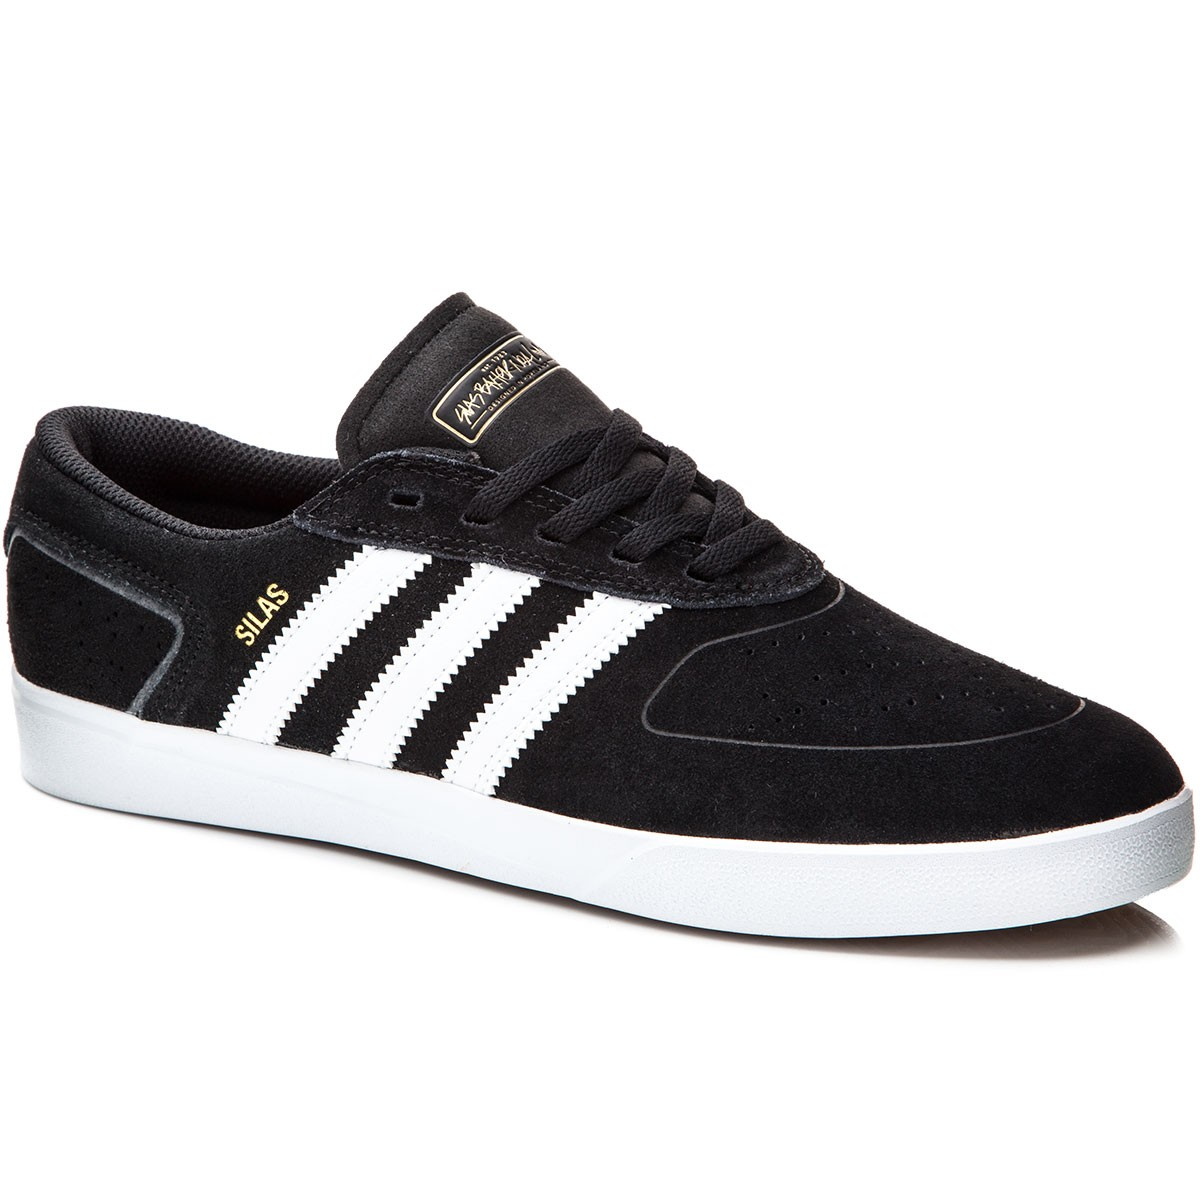 Adidas Silas Vulc Shoes